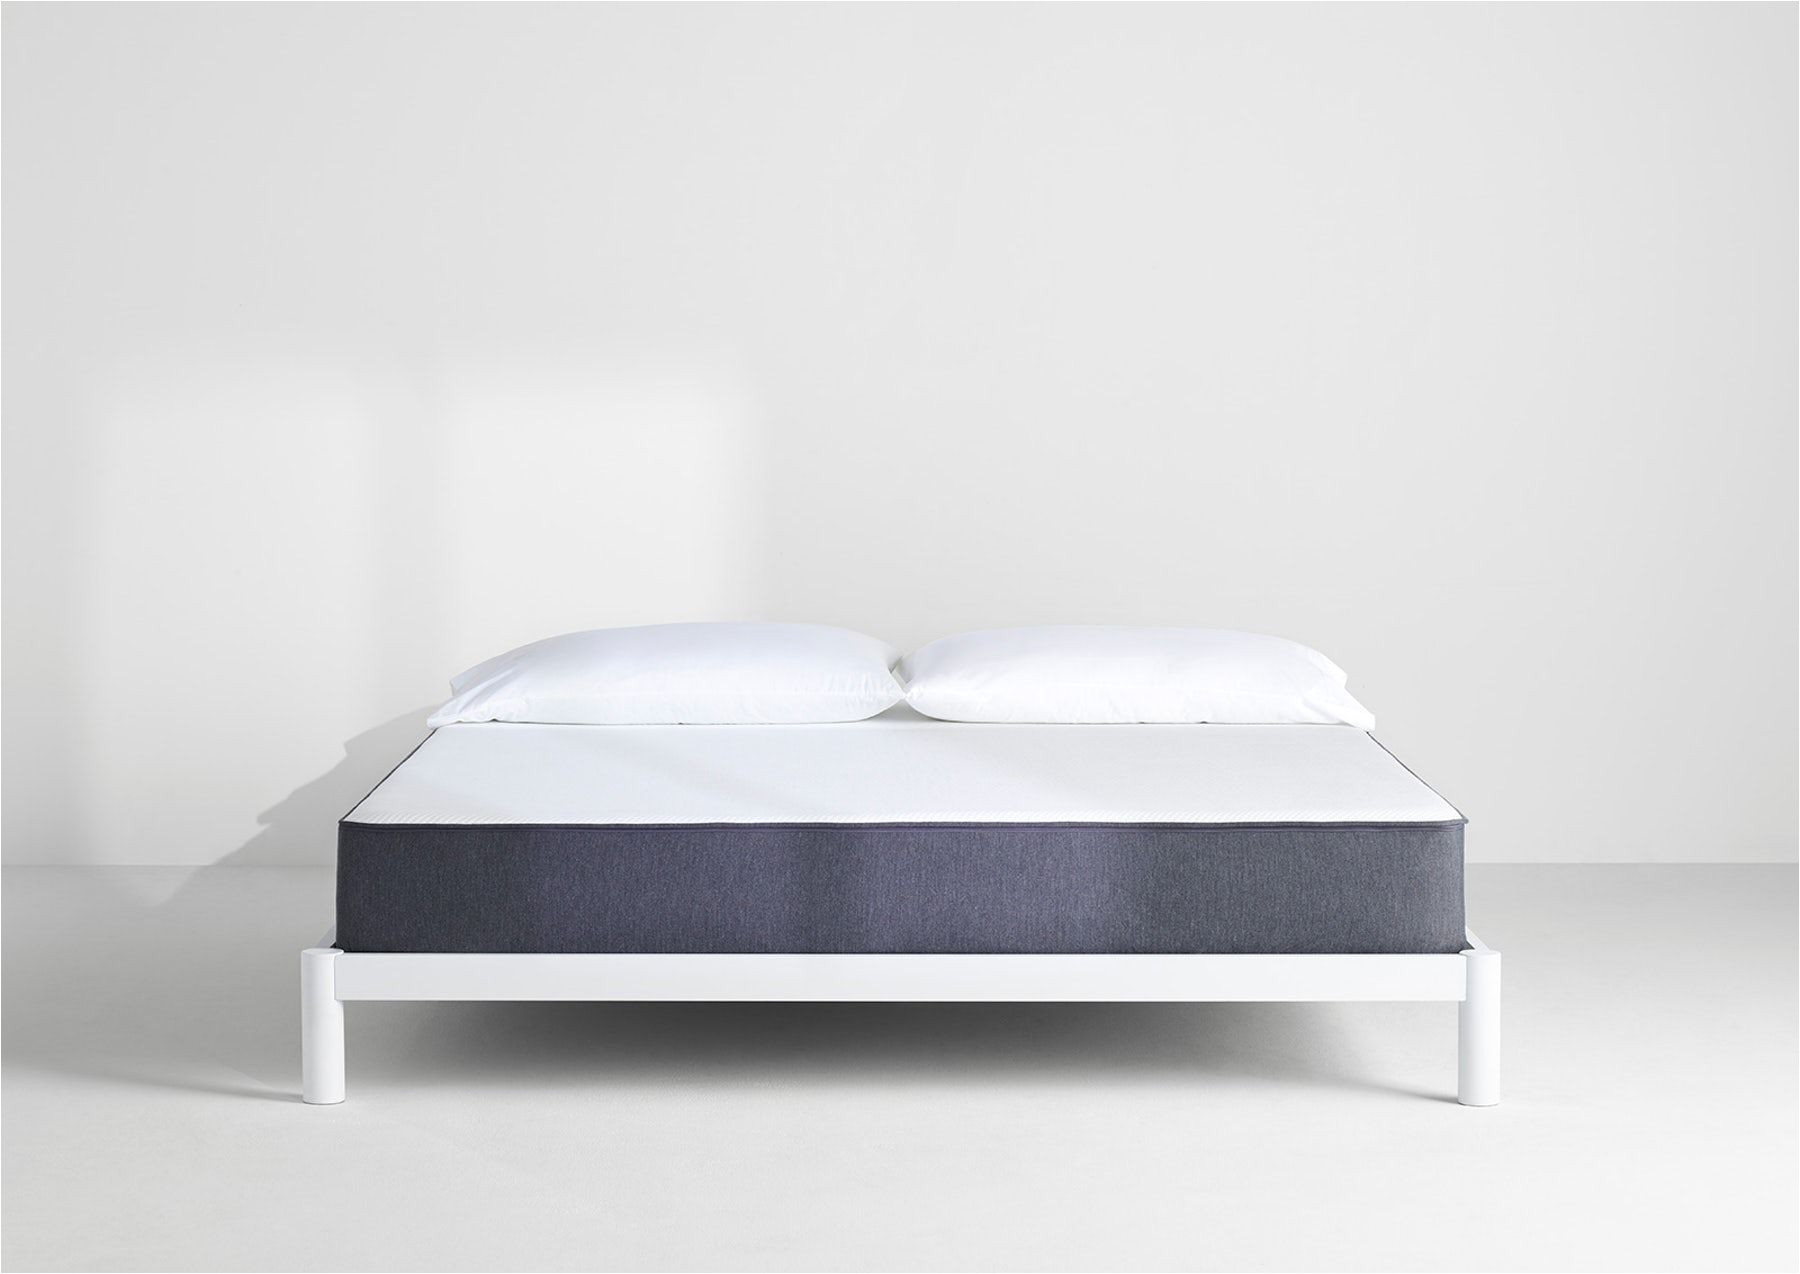 bdrm 2 2 twin xl casper mattress main